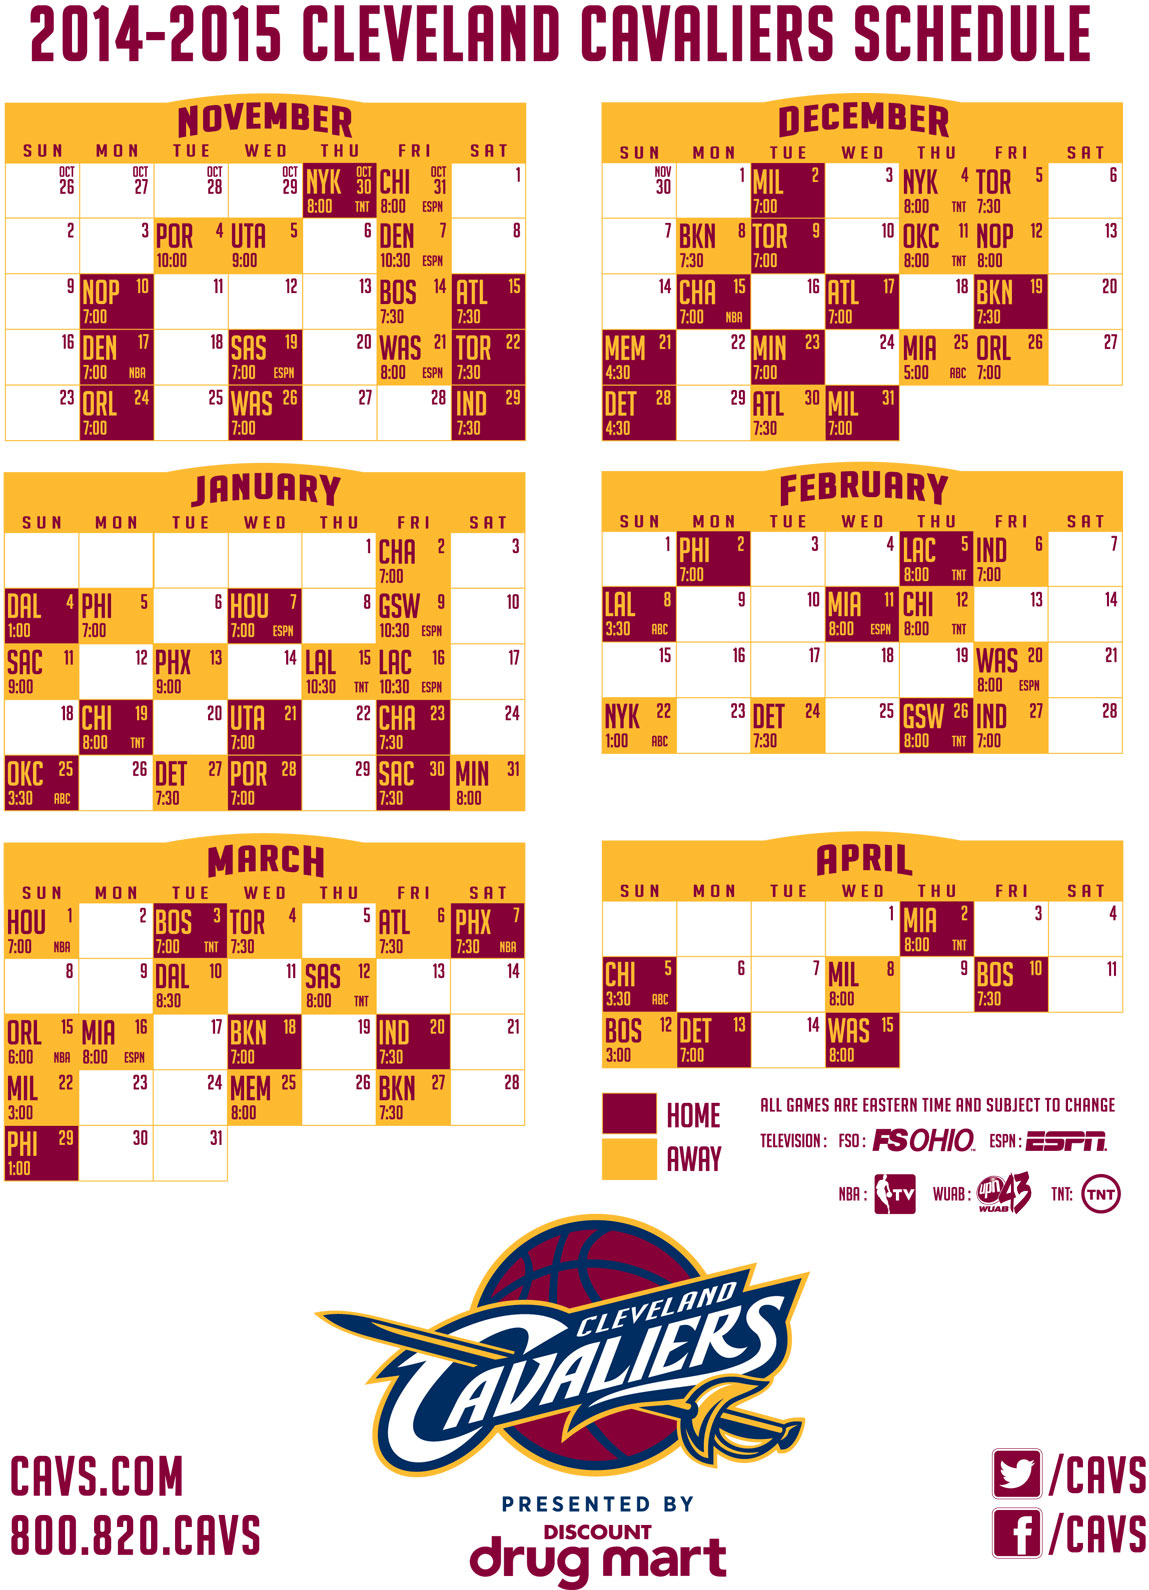 photo regarding Cleveland Cavaliers Printable Schedule named 2014-15 Cleveland Cavaliers Timetable - WEOL Radio 930 AM